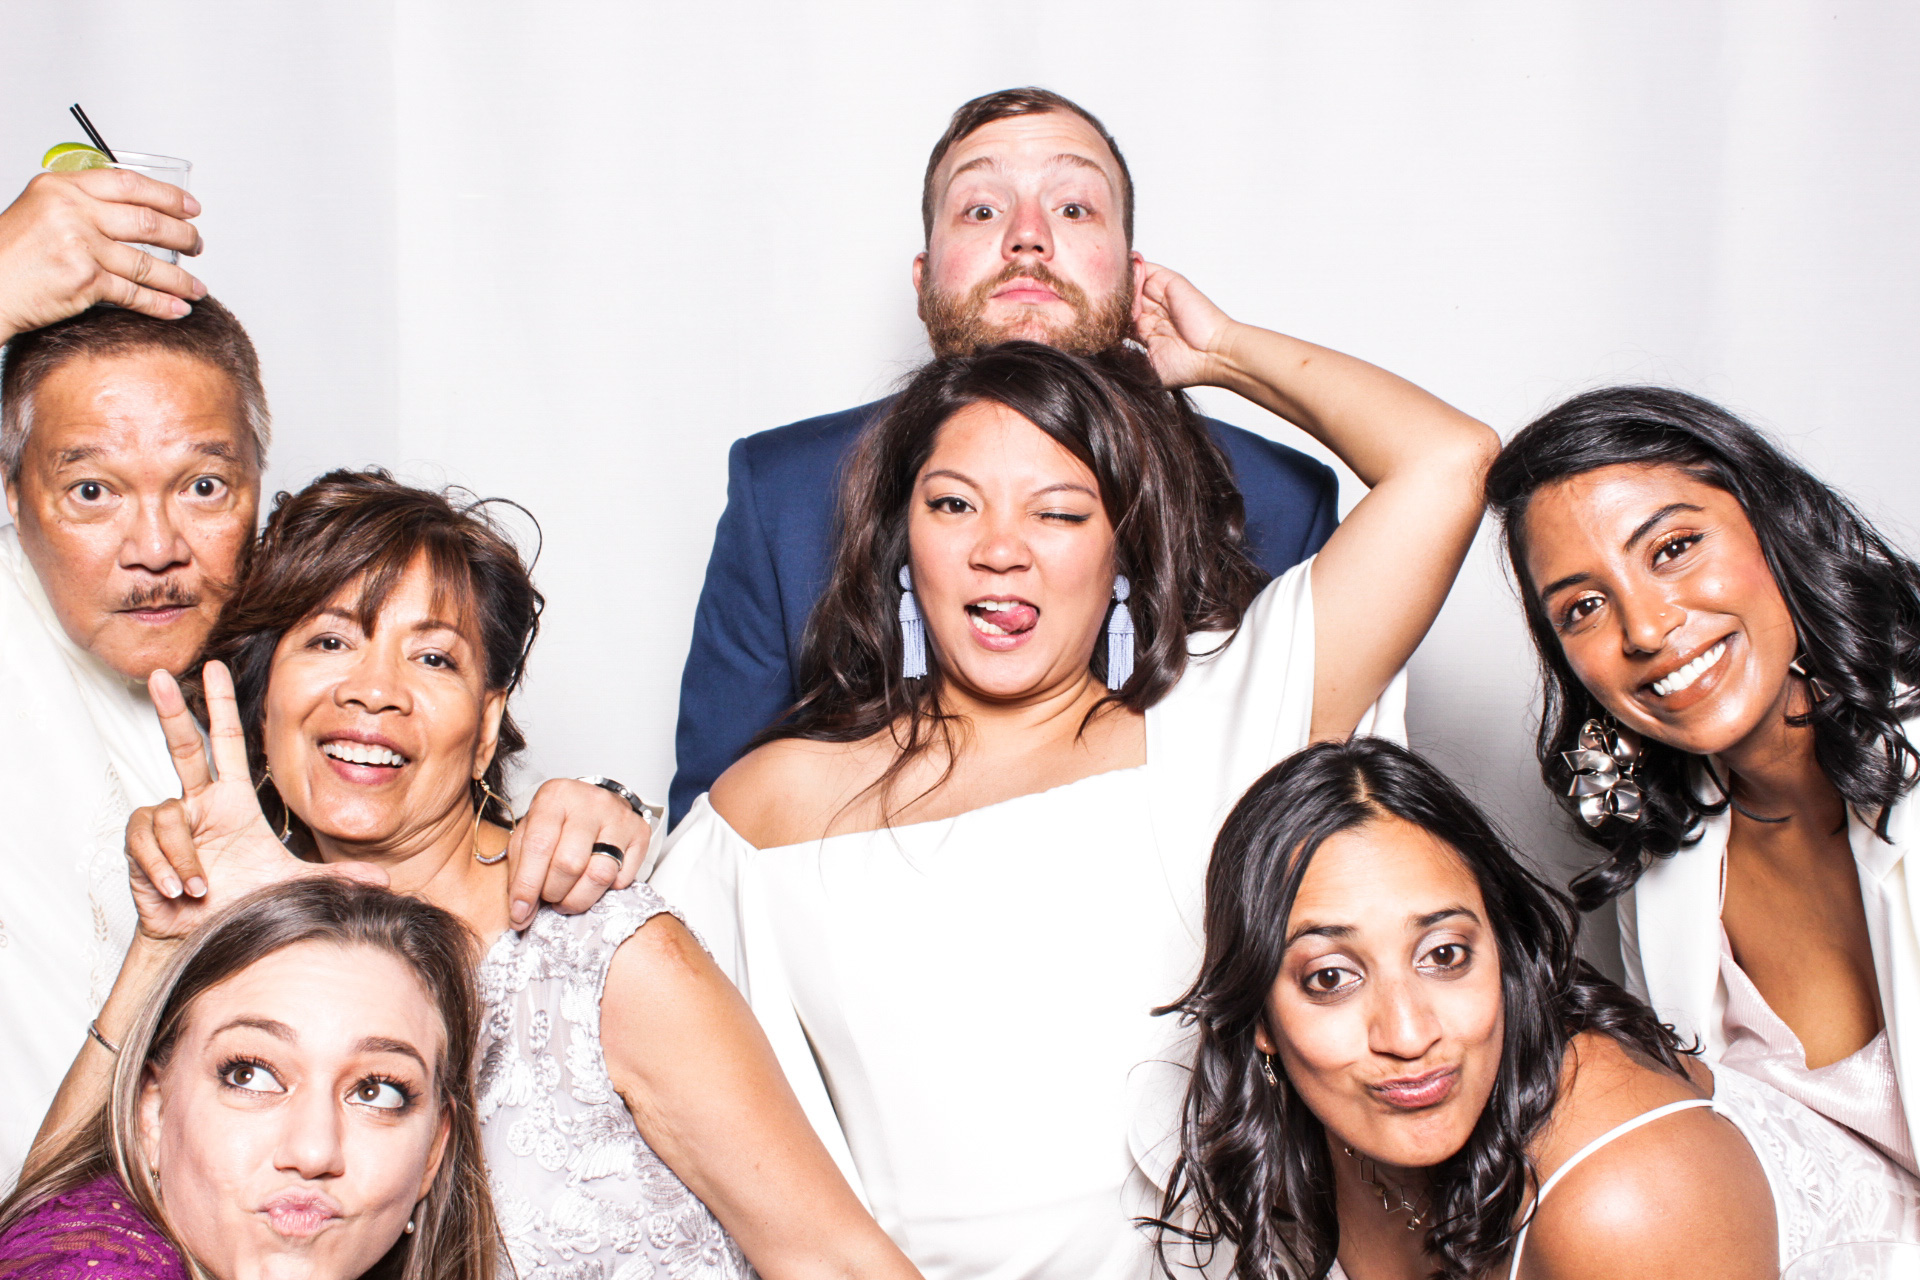 A bride and groom posing in front of their Phizpix photo booth rental with friends